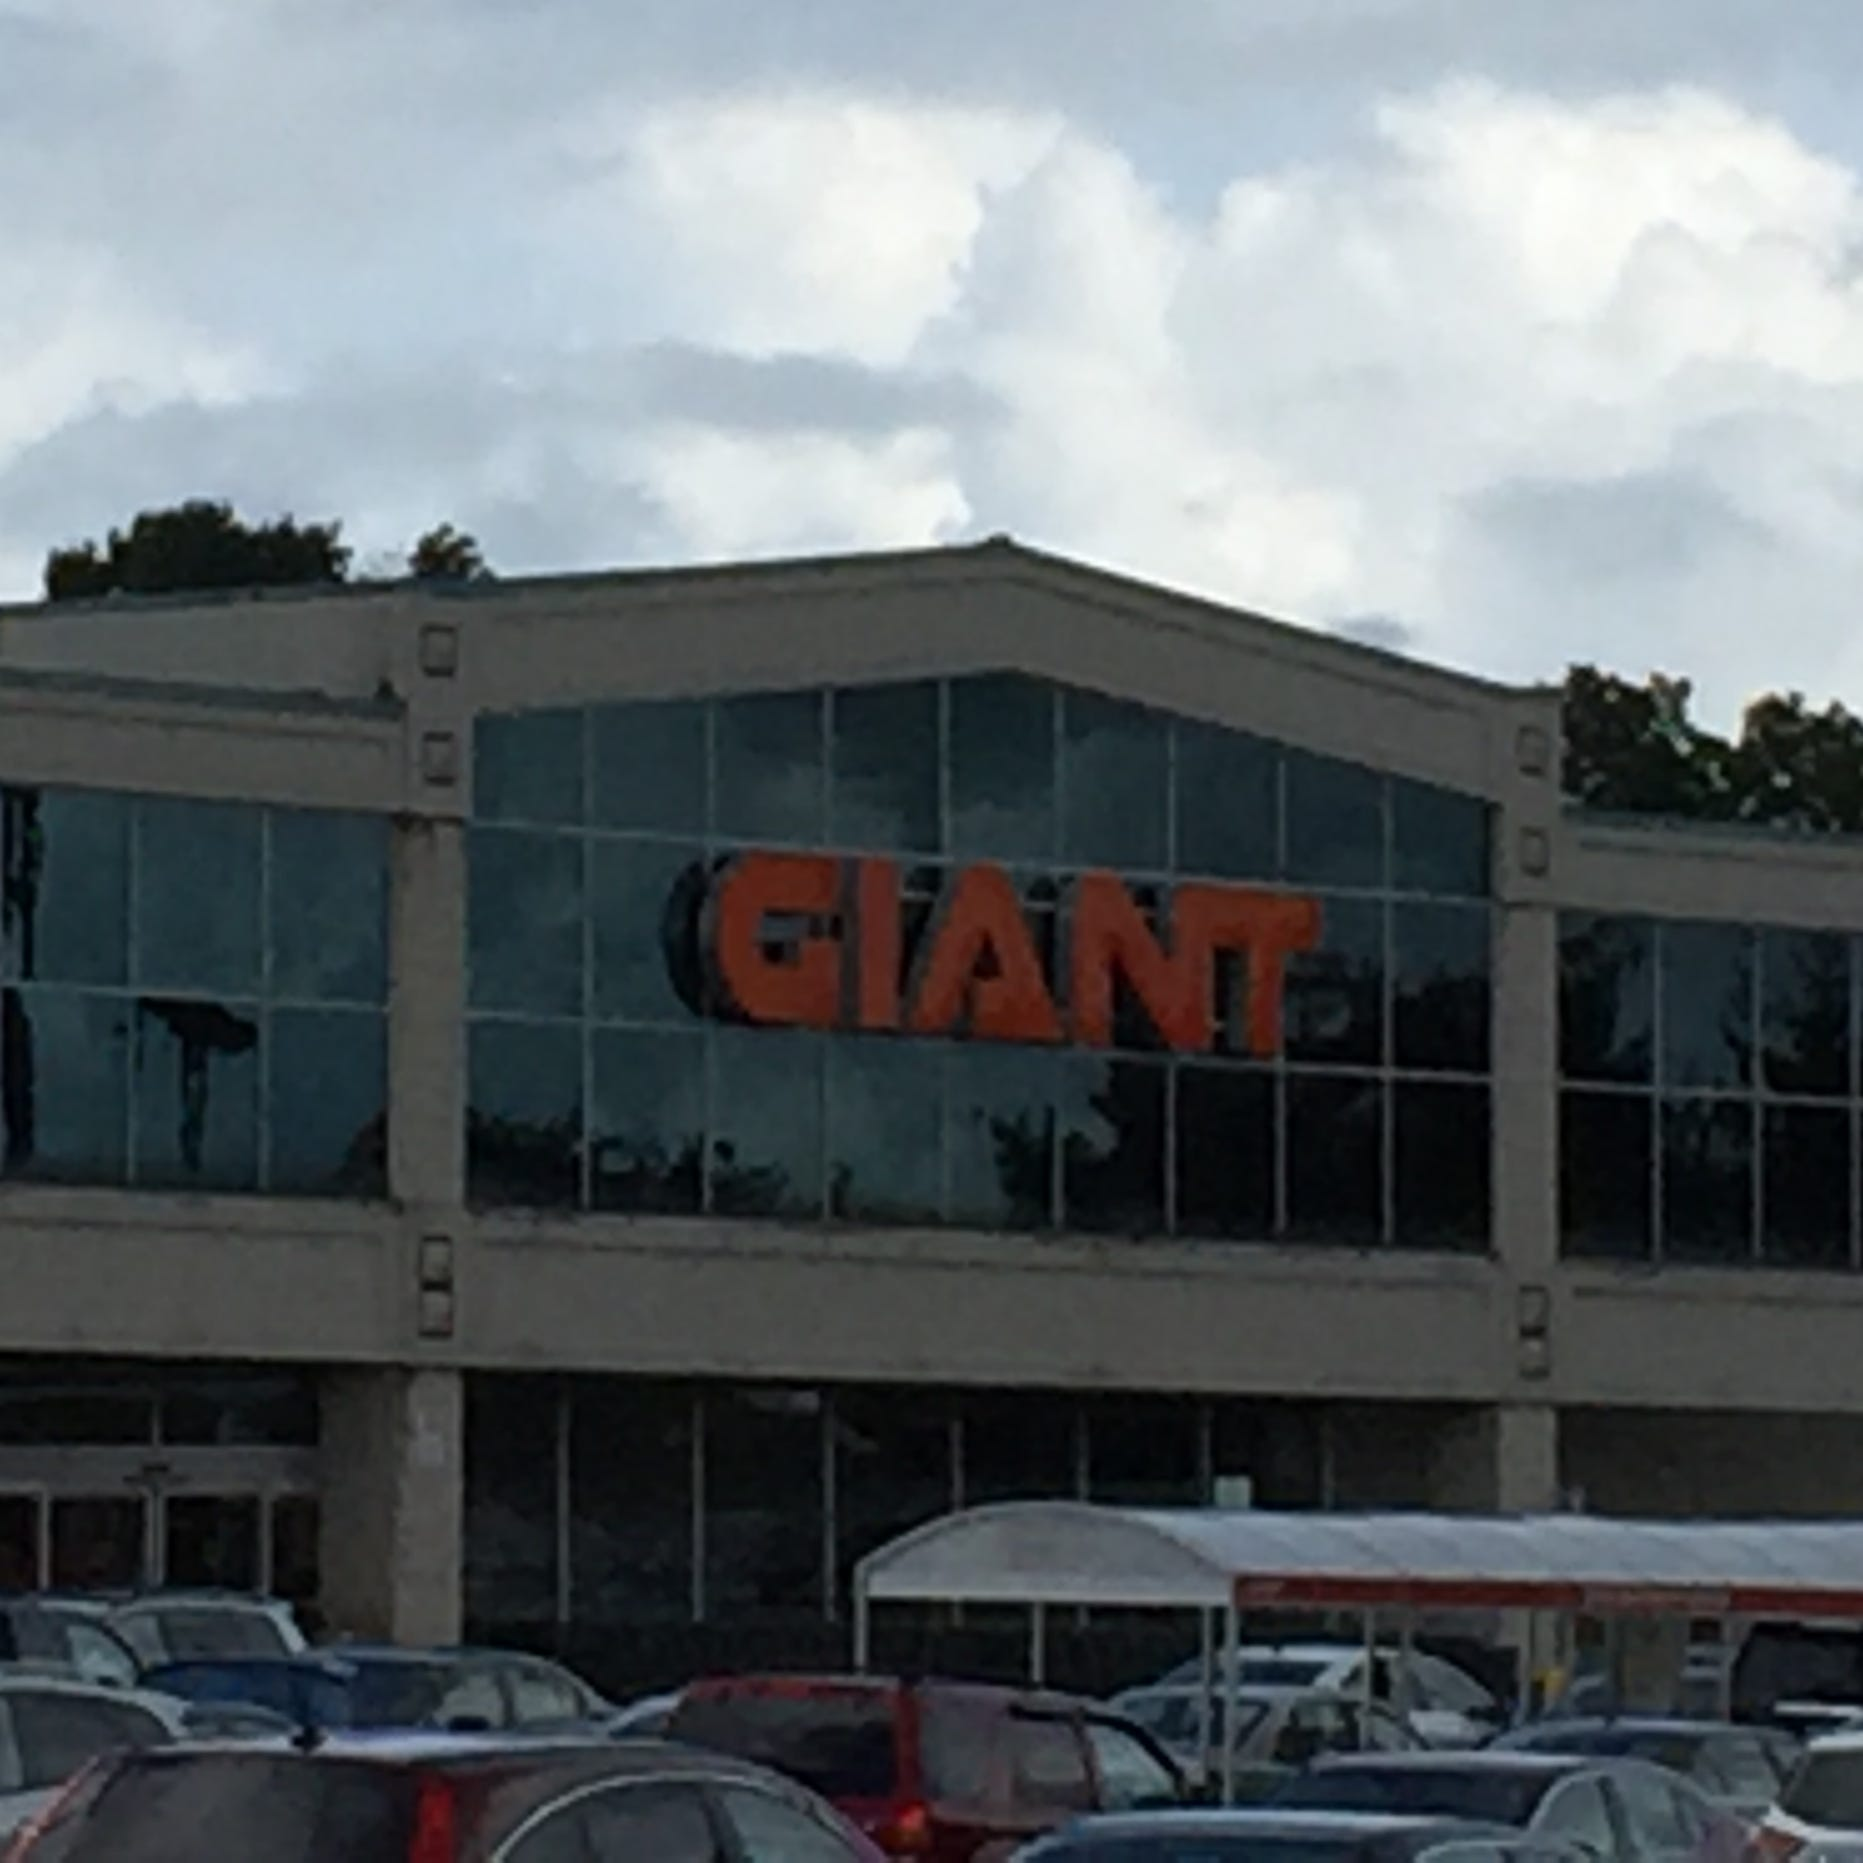 Beer and wine could soon go on sale at one of two Giants Food Stores in Lebanon County.